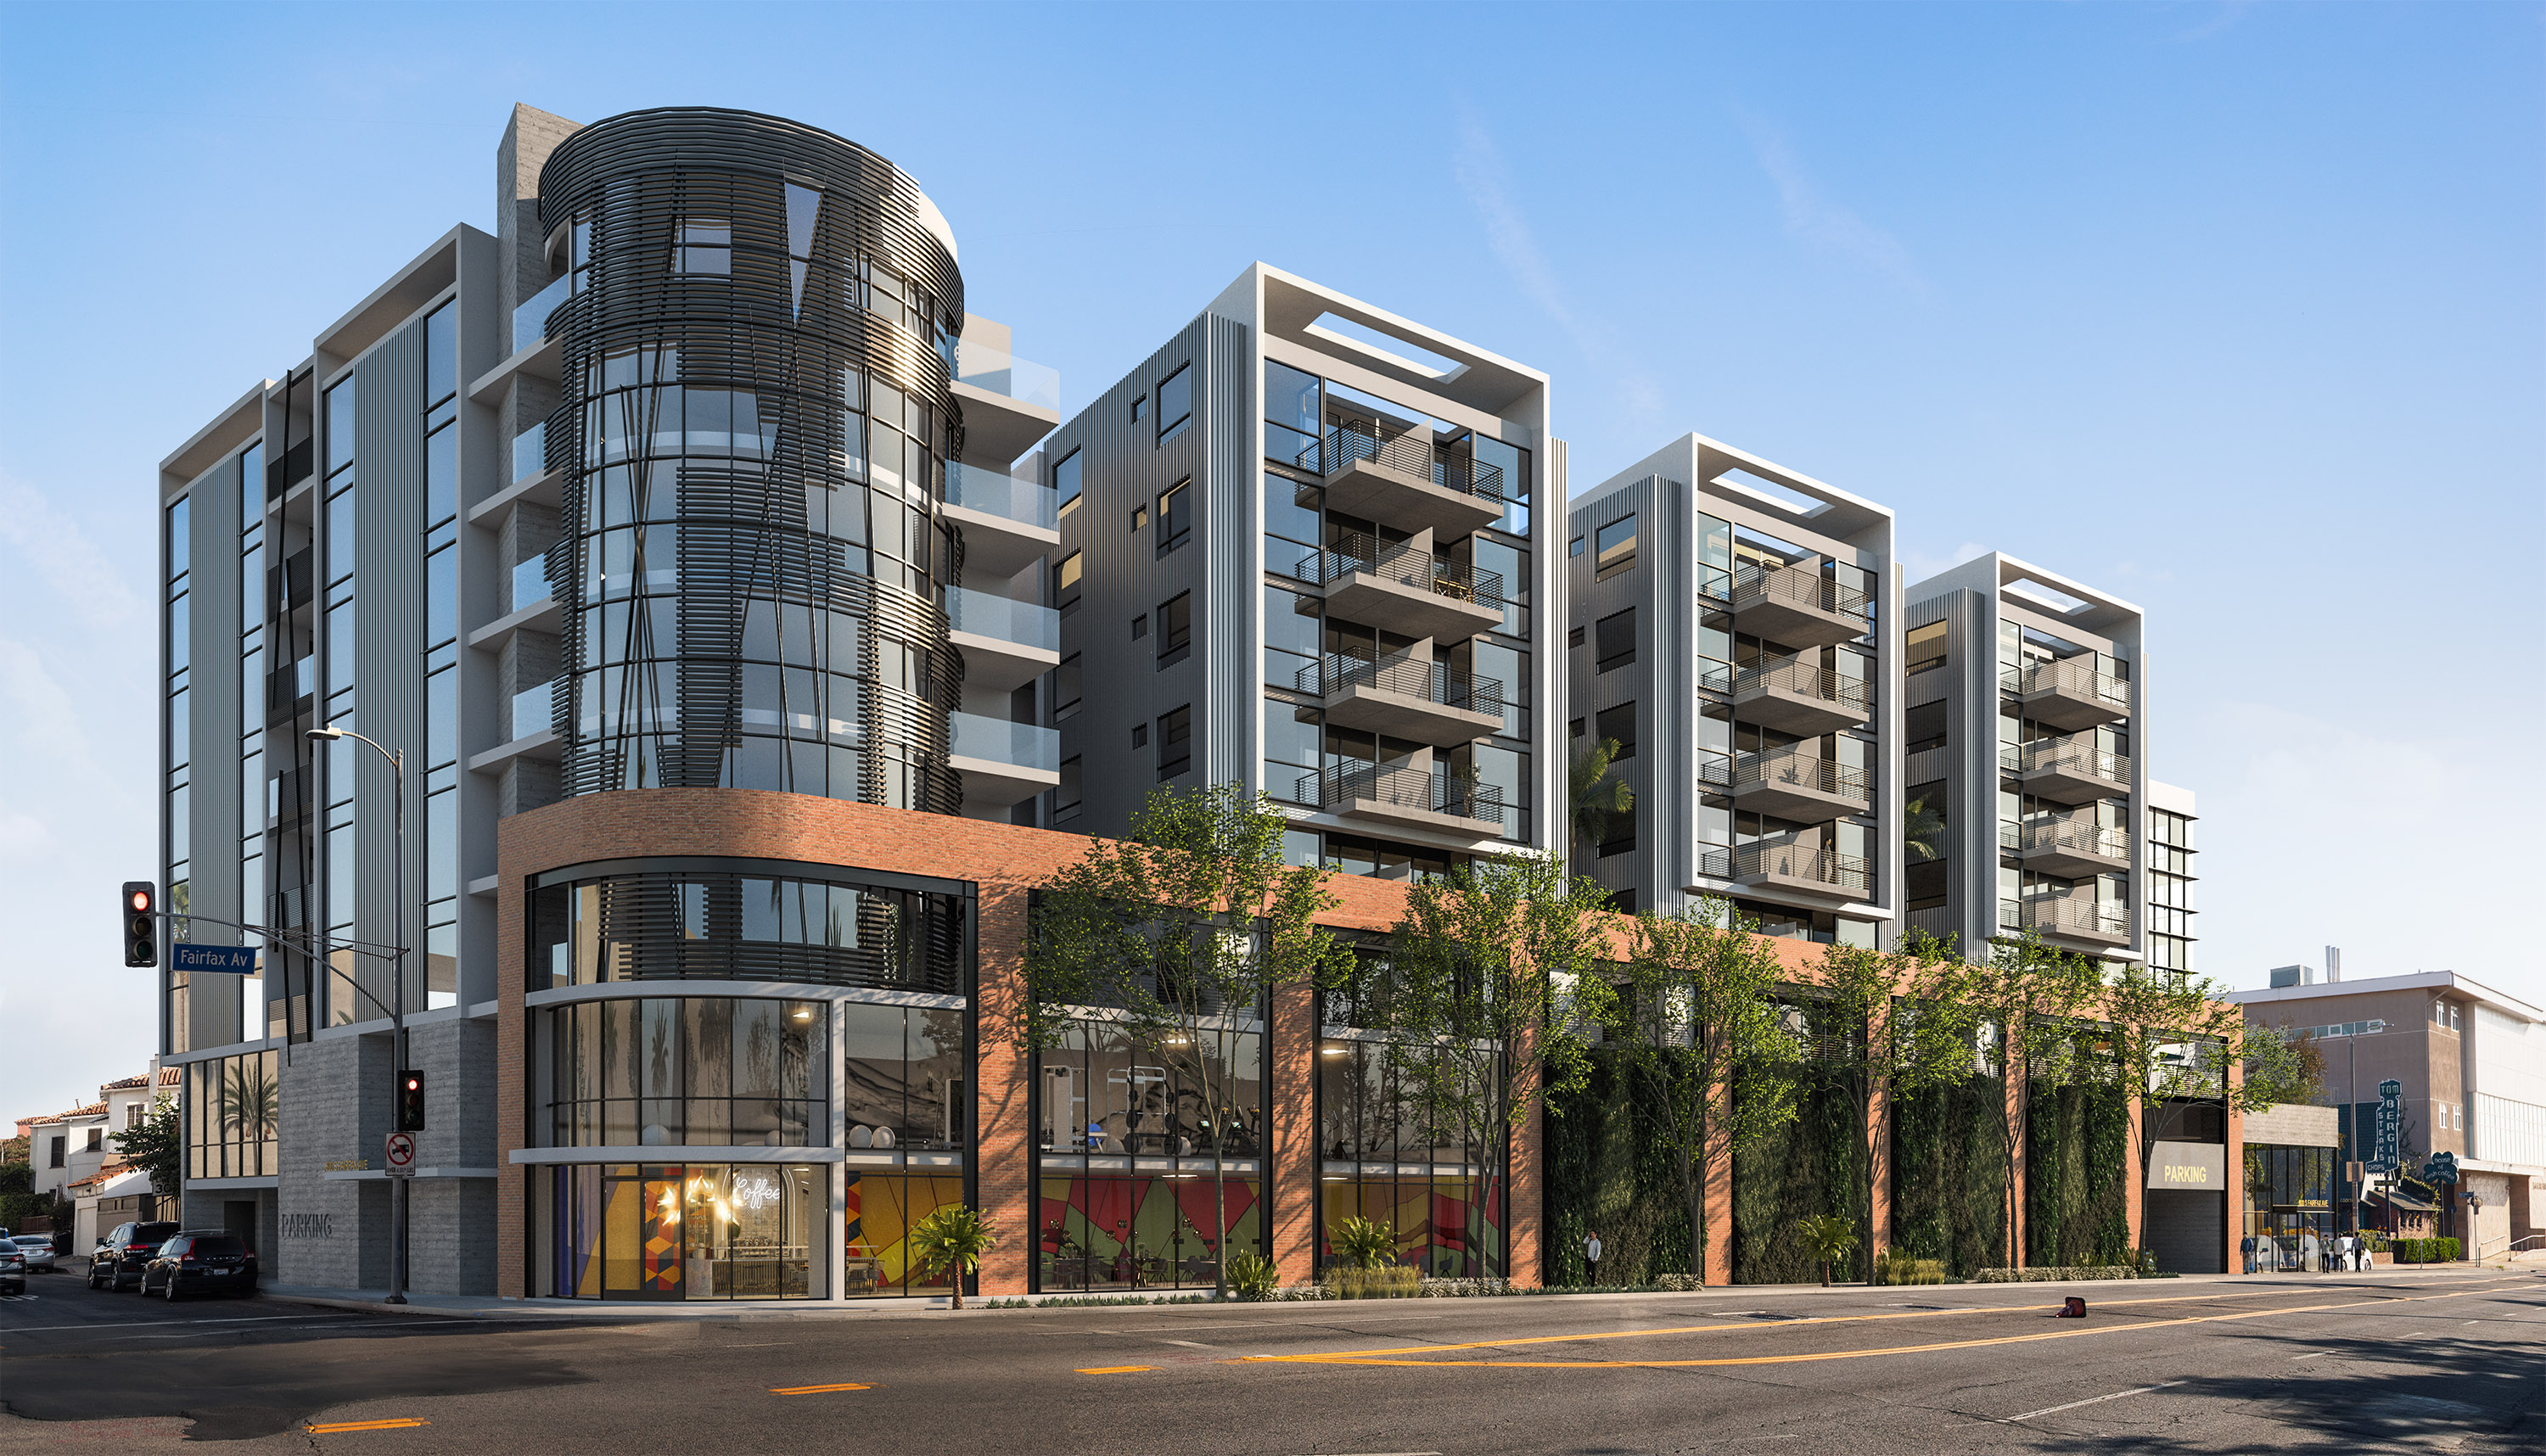 First look: 200 apartments to rise next to Tom Bergin's in Miracle Mile